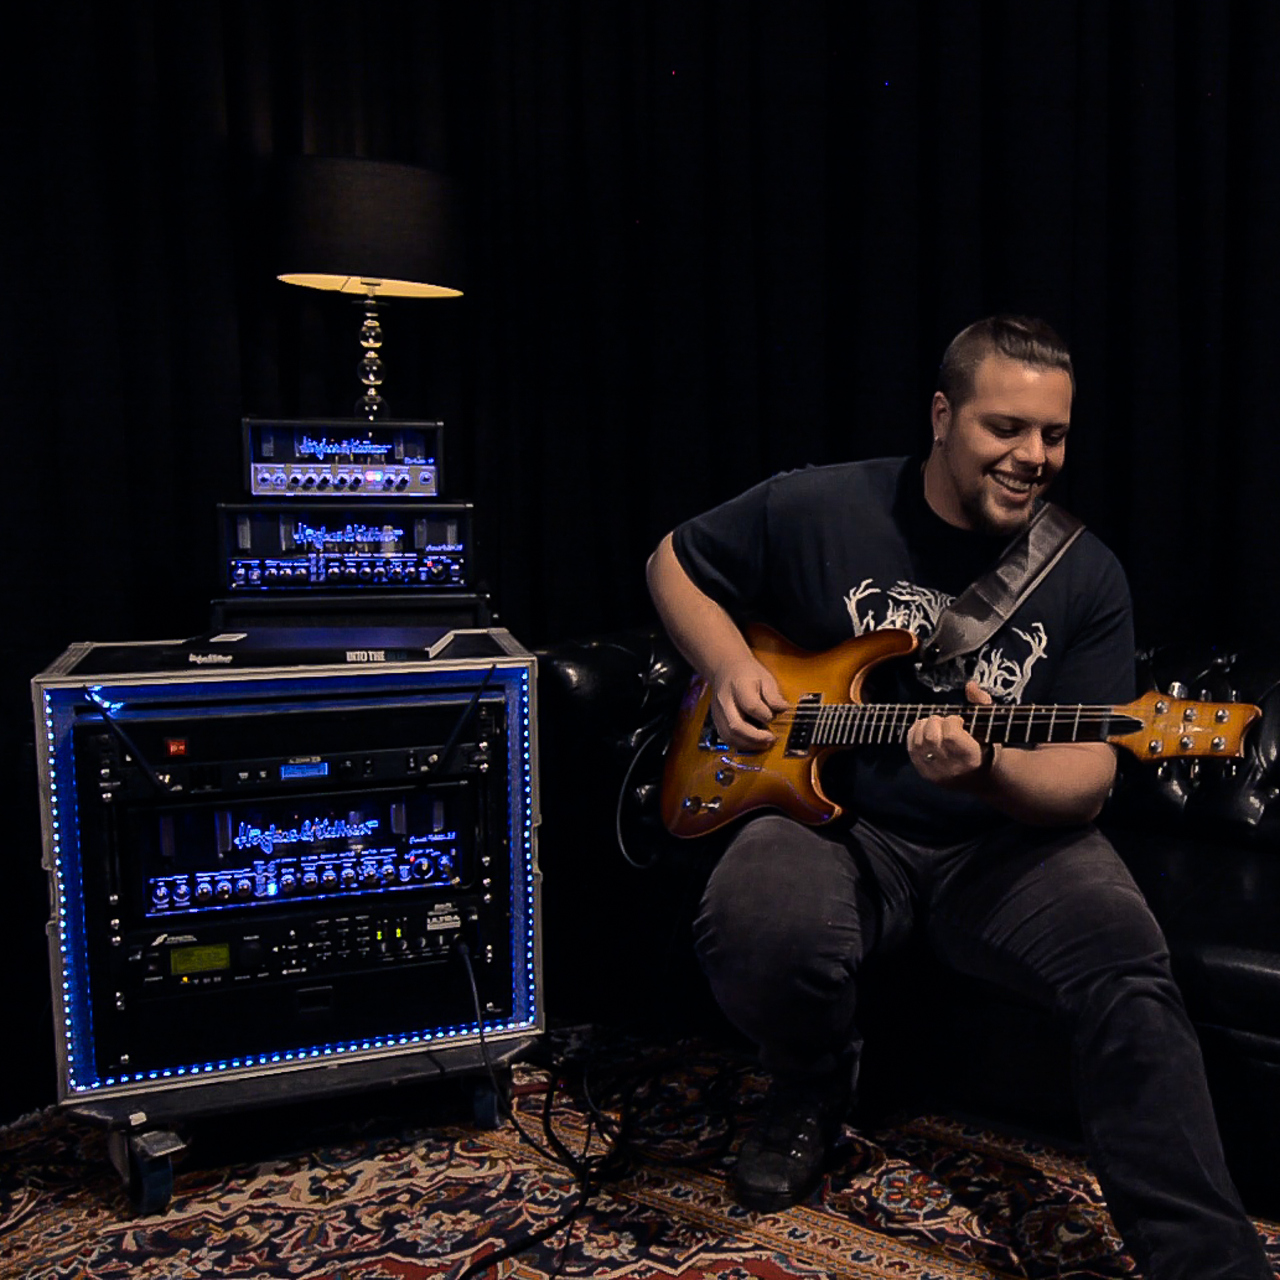 Why A Guitar Rack System With Built In Tube Amp And Effects Could Making Simple Diy Mini Amplifier Strat Other Be The Ultimate Gigging Rig Hughes Kettner Blog